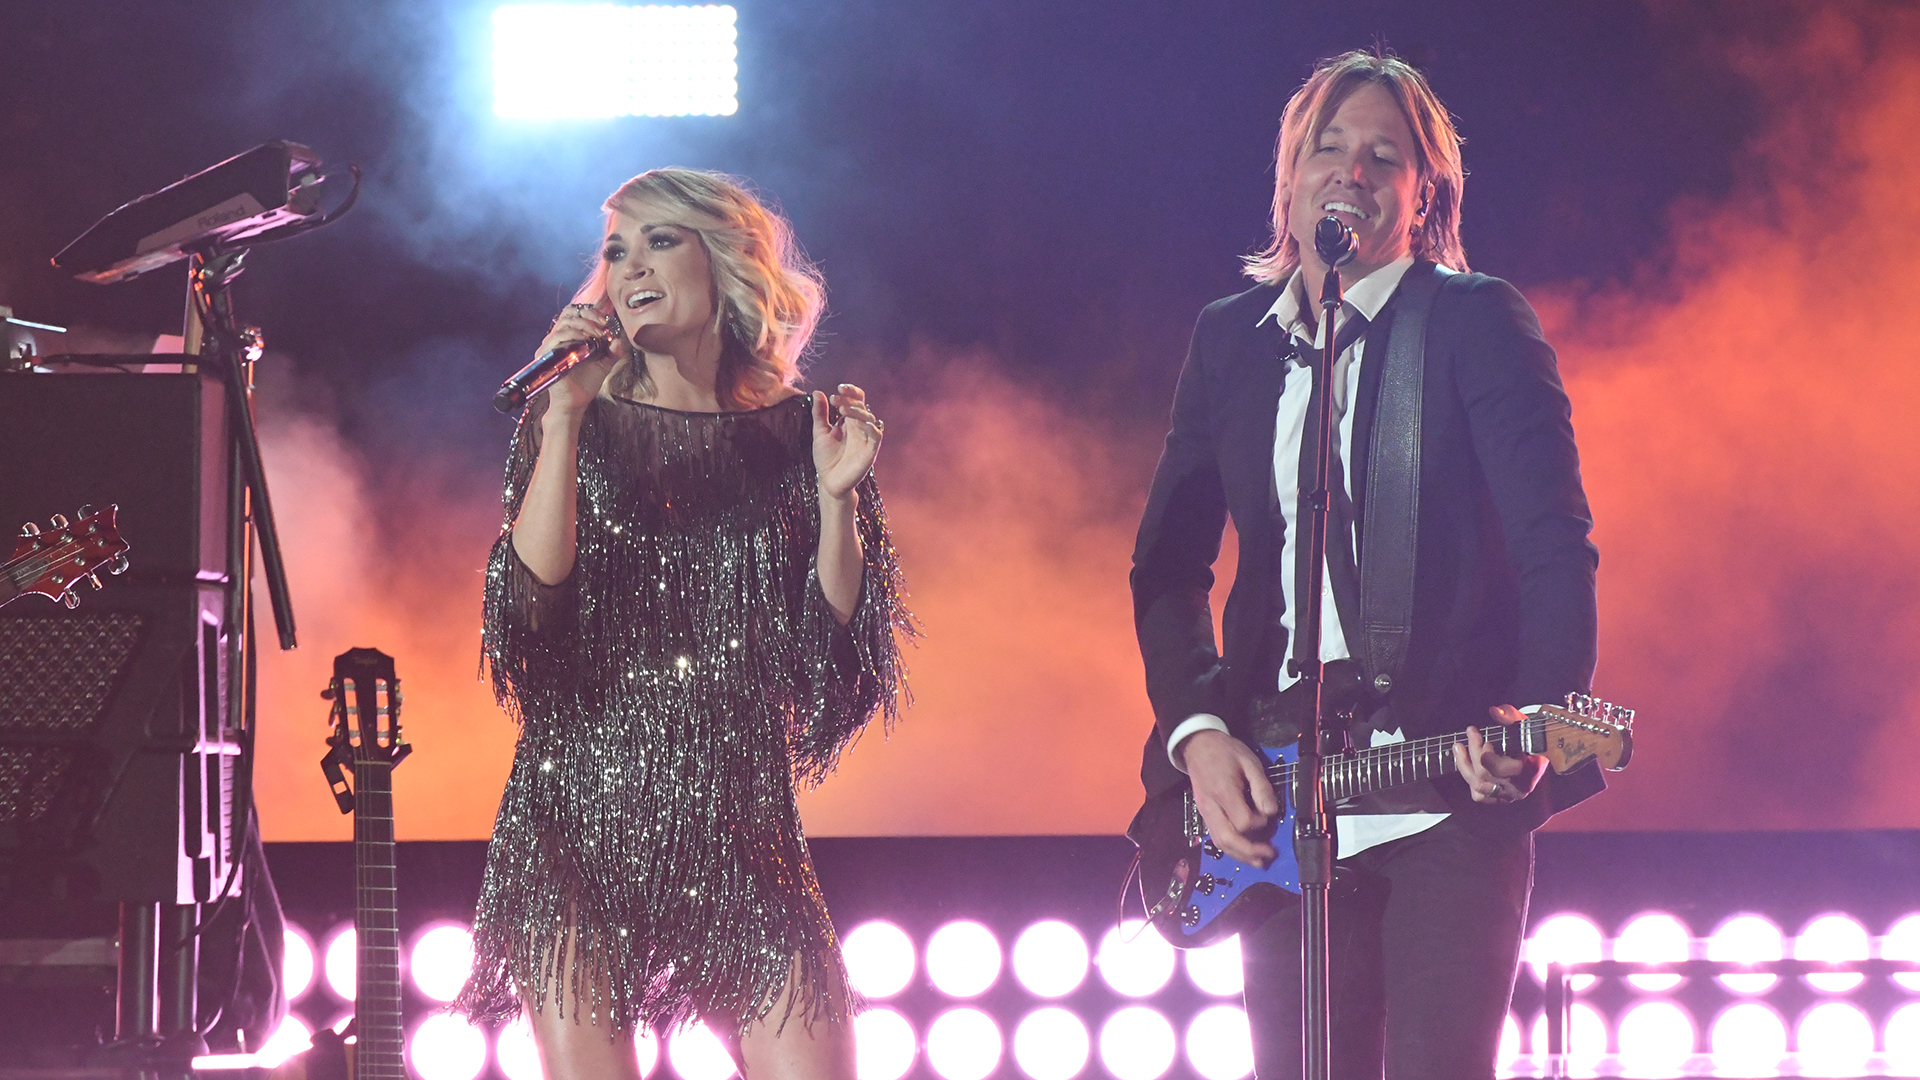 Keith Urban and Carrie Underwood perform